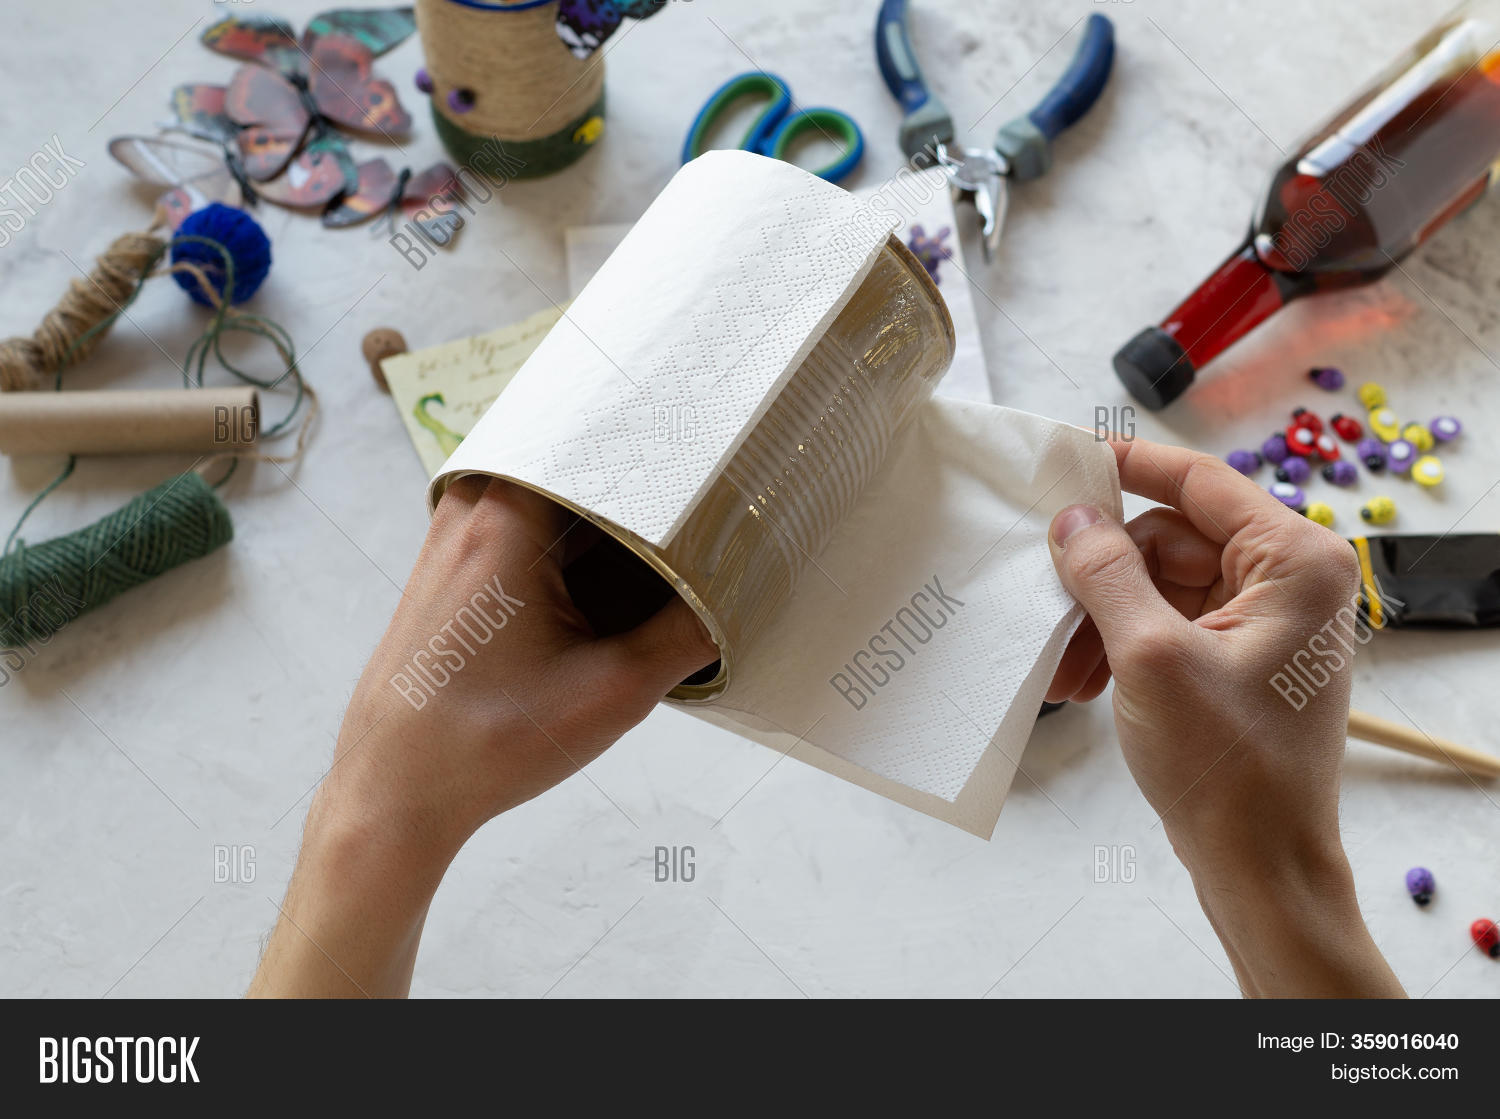 Decorating Tin Cans Image Photo Free Trial Bigstock